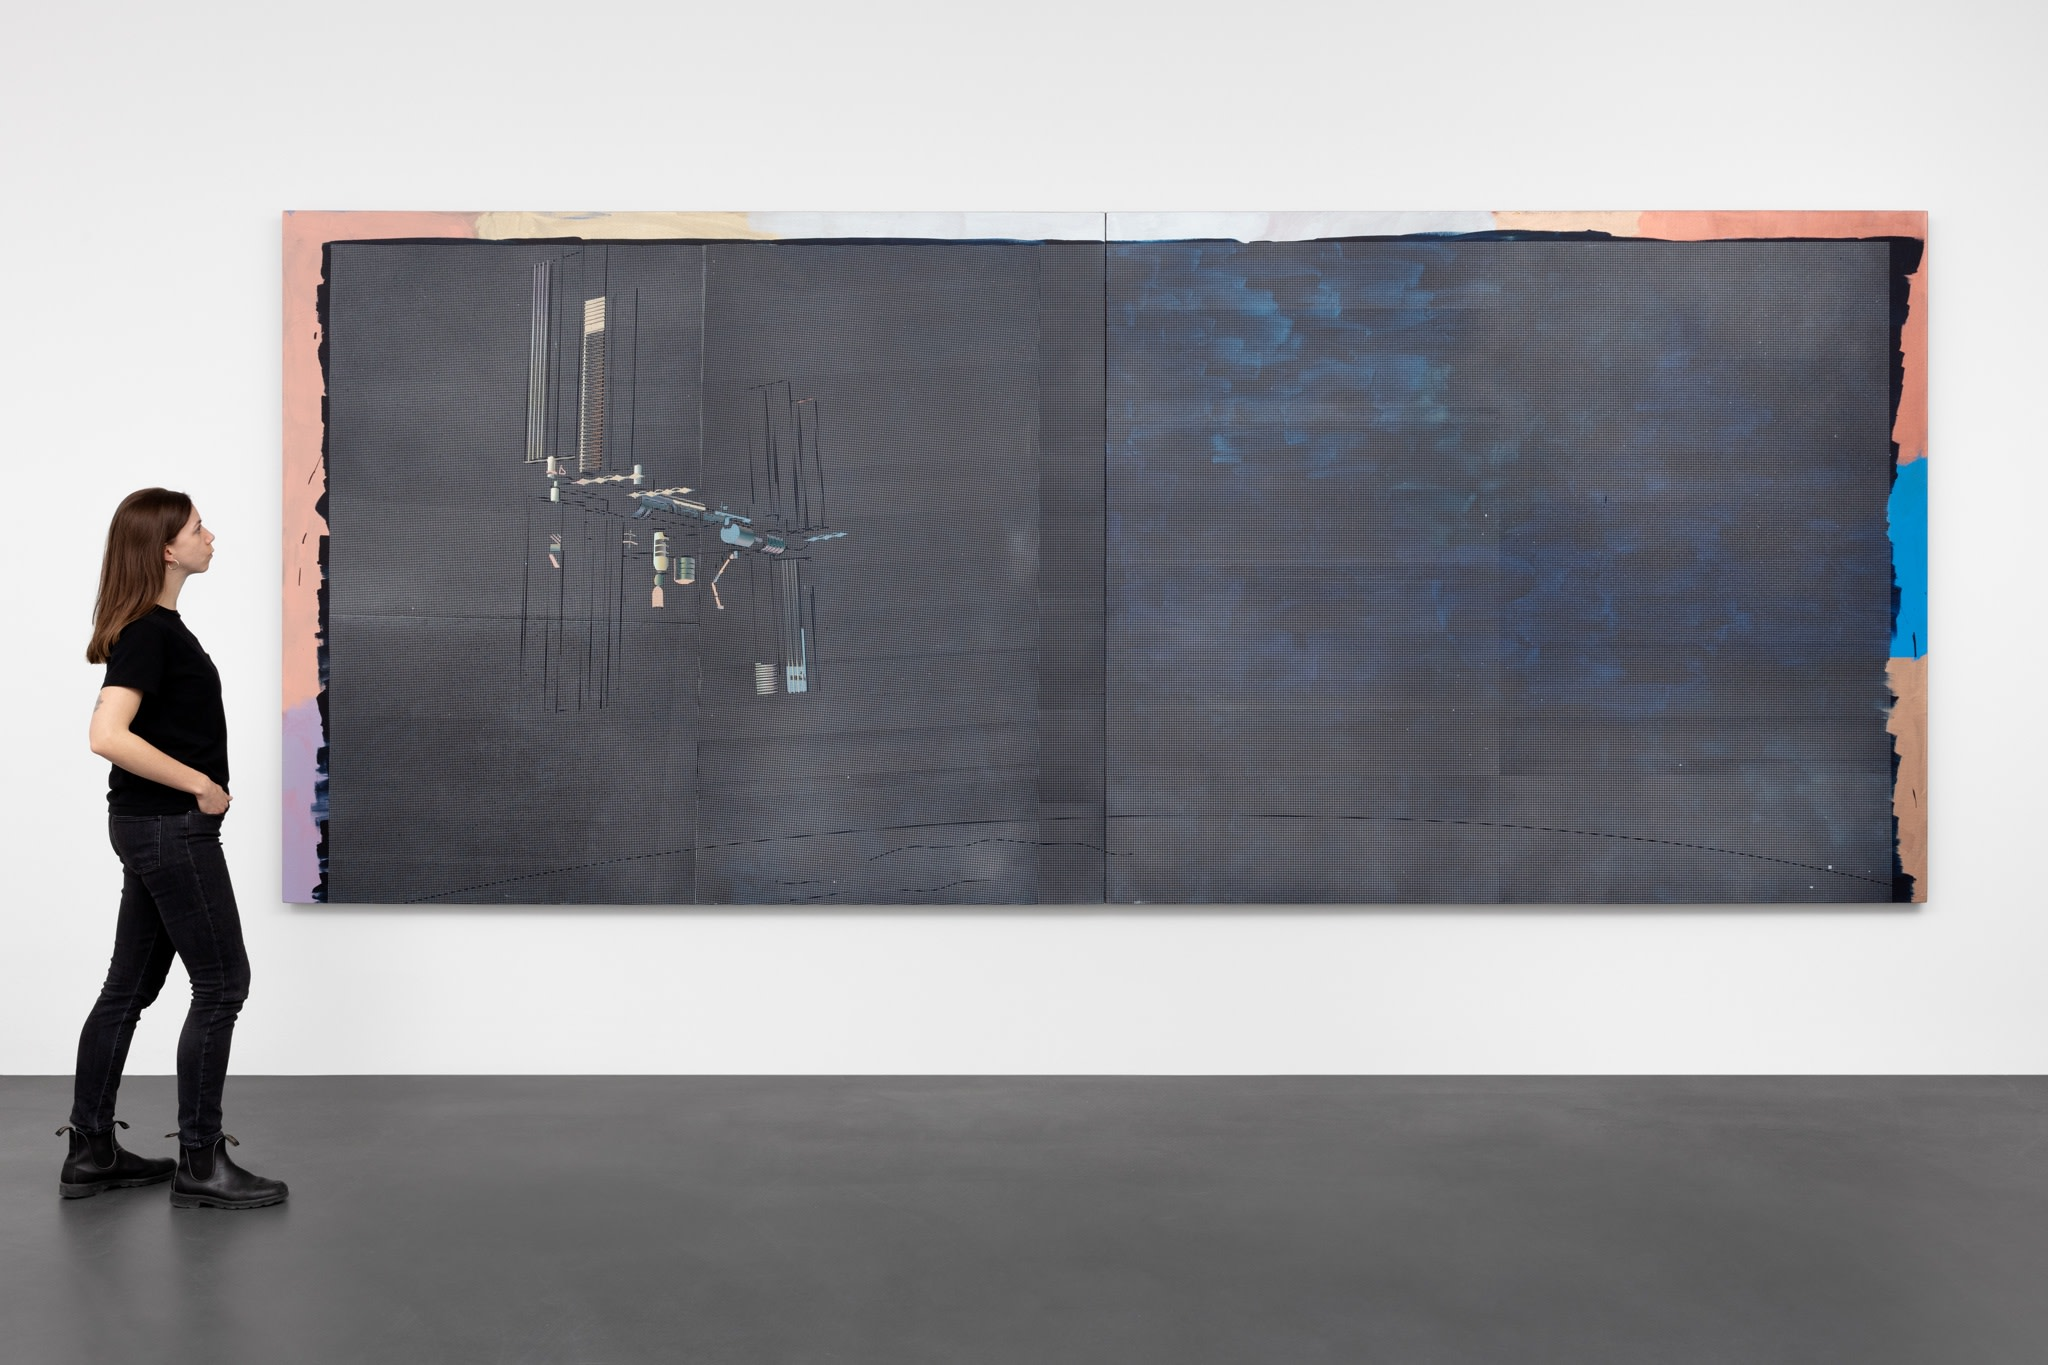 Ciu Jie, International Space Station, 2019, acrylic and spray paint on canvas, 210 x 500 cm (82 5/8 x 196 7/8 in) (overall), 210 x 250 cm (82 5/8 x 98 3/8 in) (each panel, 2 parts). Photo © Andrea Rossetti